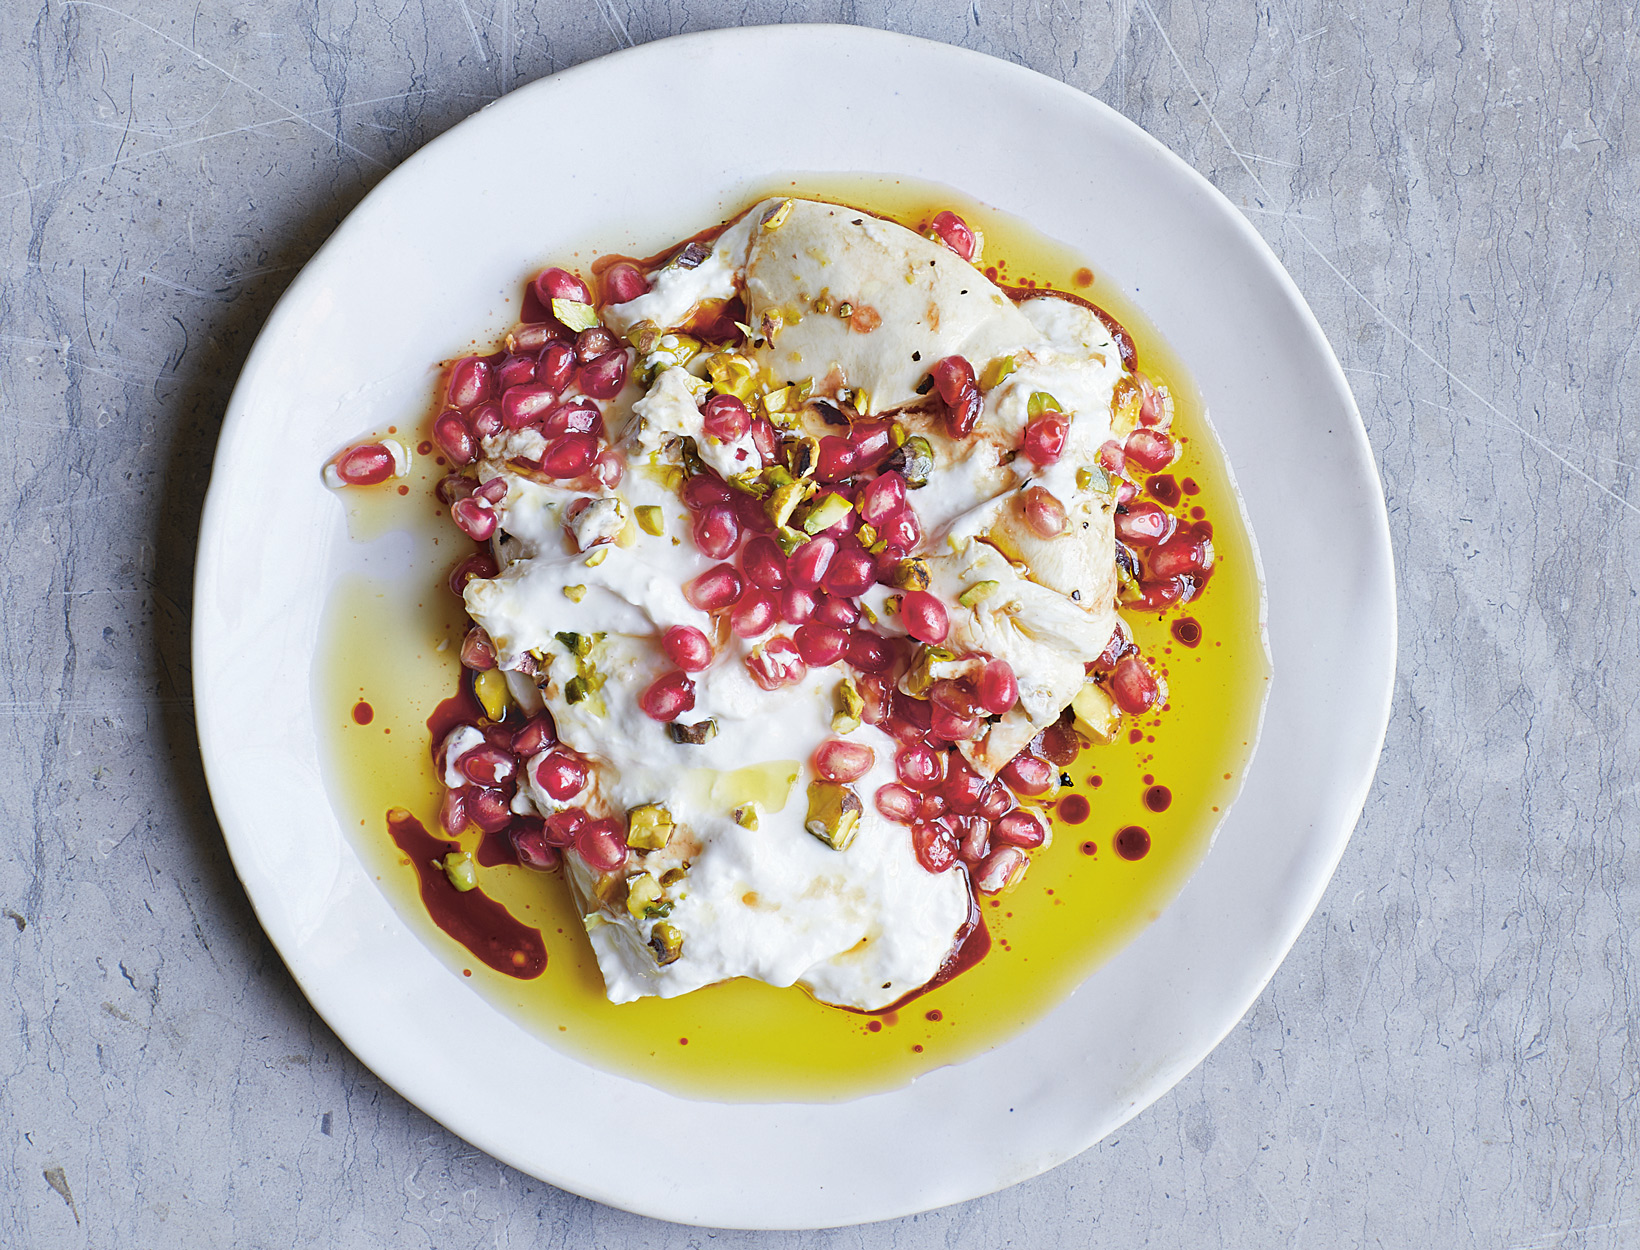 Burrata, Pomegranate, and Pistachio